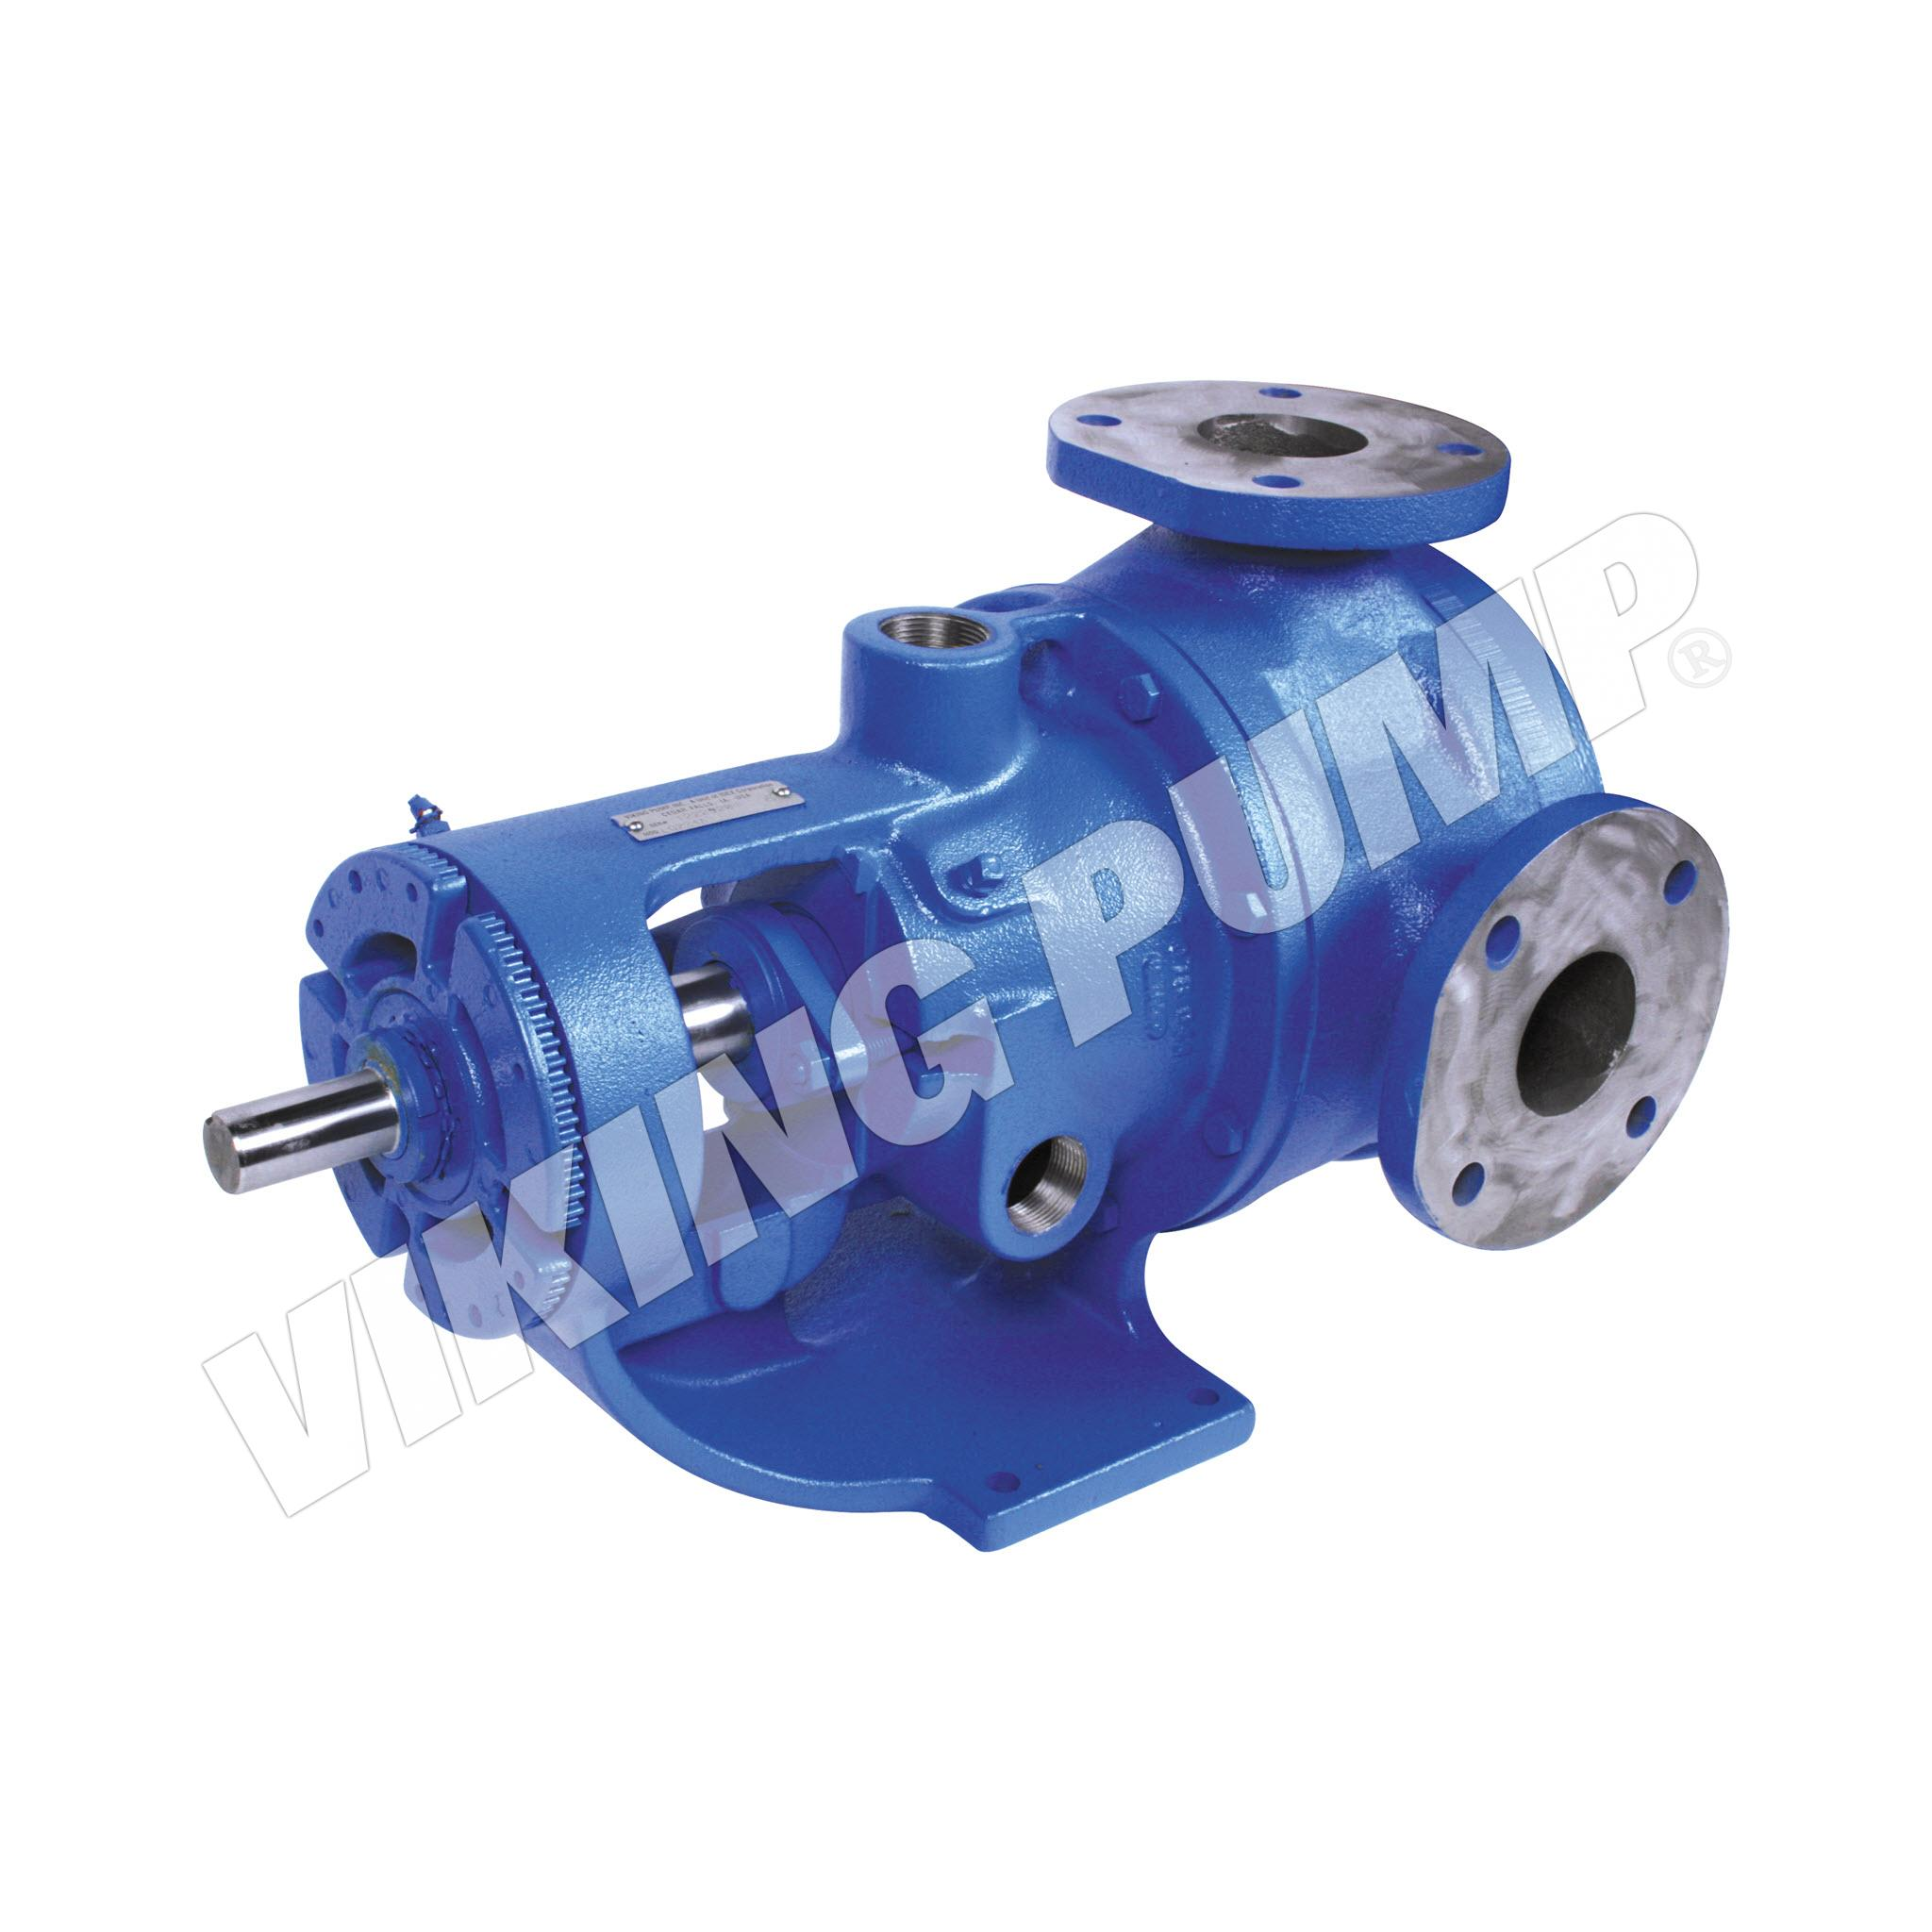 Model LQ4224AE, Foot Mounted, Packed Gland, less Relief Valve, Flange Port Pump